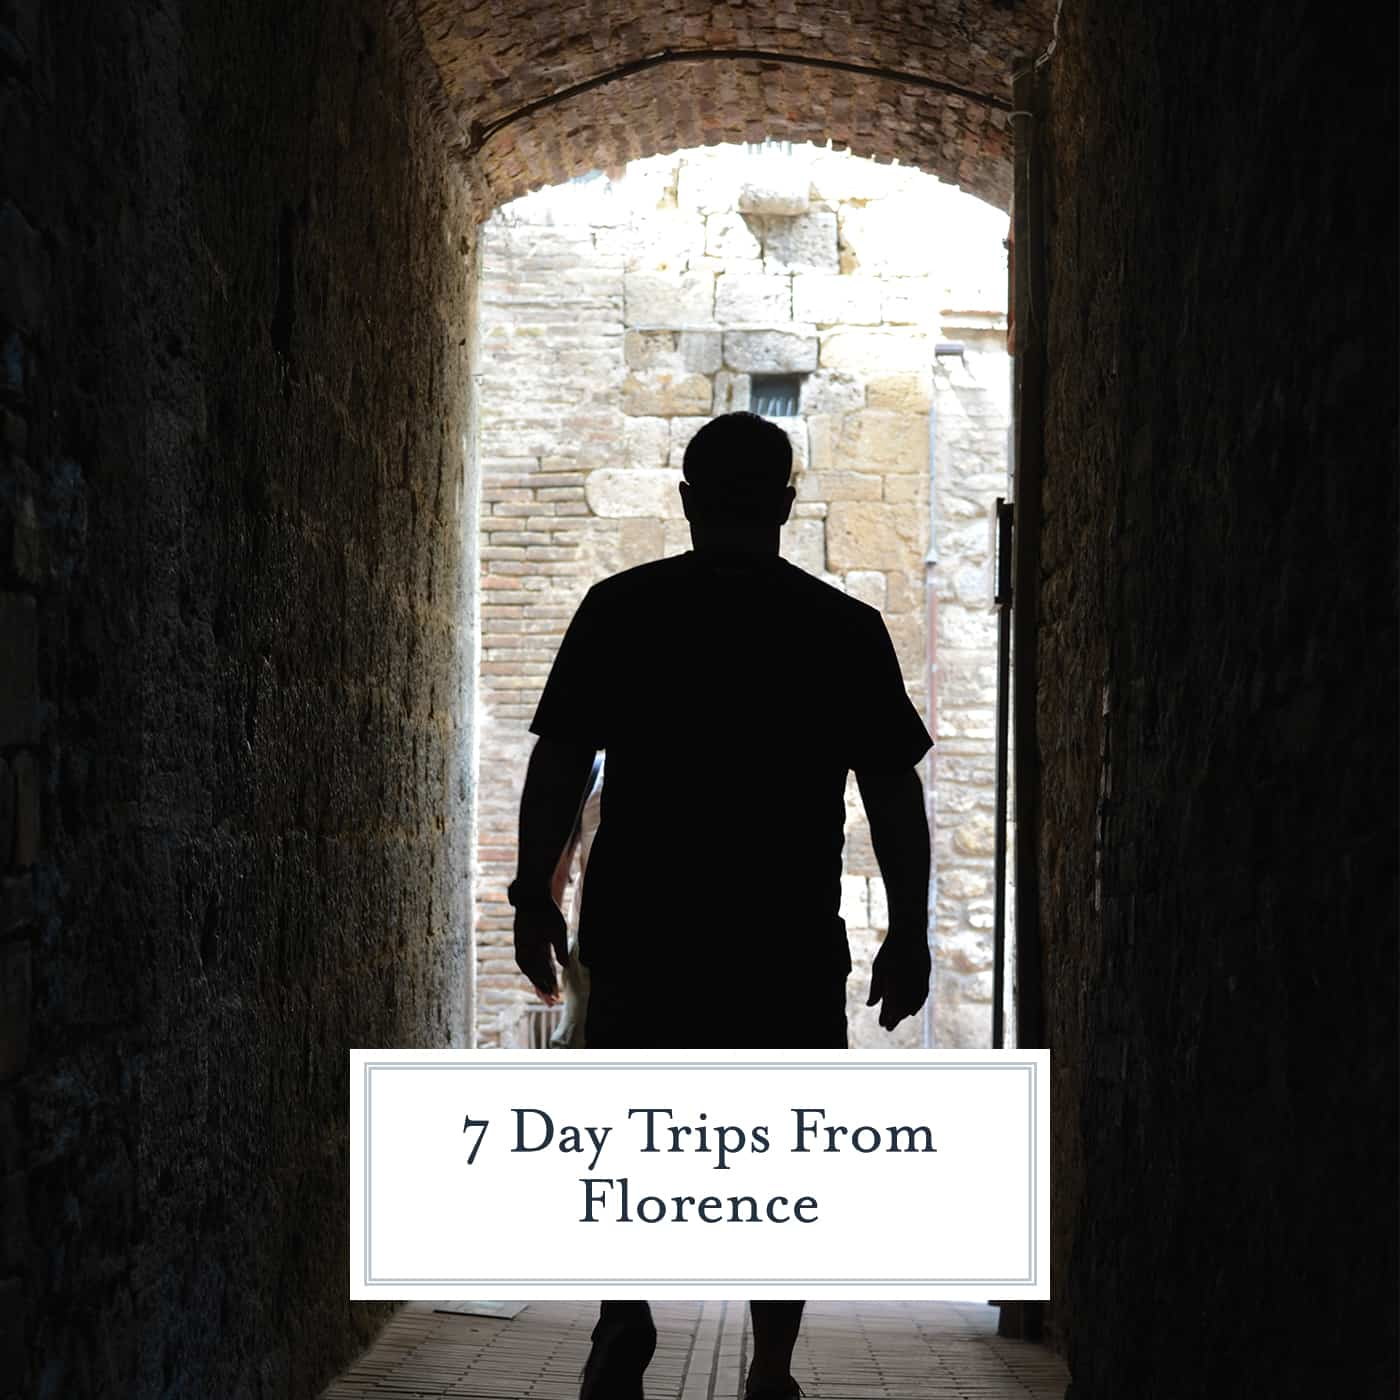 If you are looking to escape the bustle of the city, here are 7 fabulous day trips from Florence! #florence #tuscany www.savoryexperiments.com